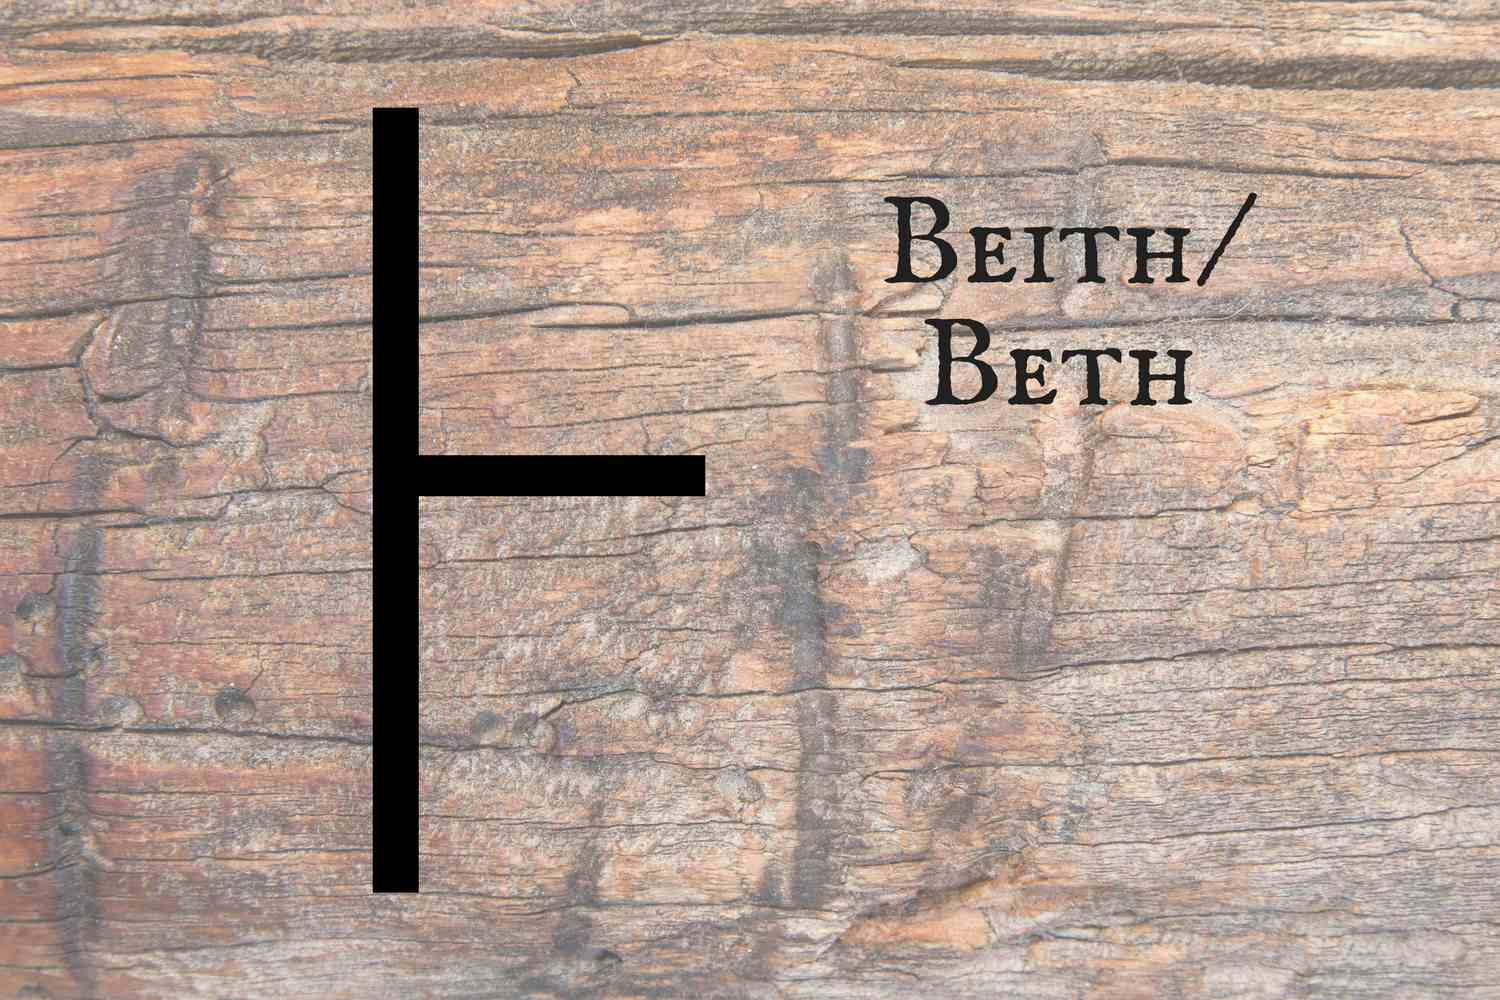 Beith